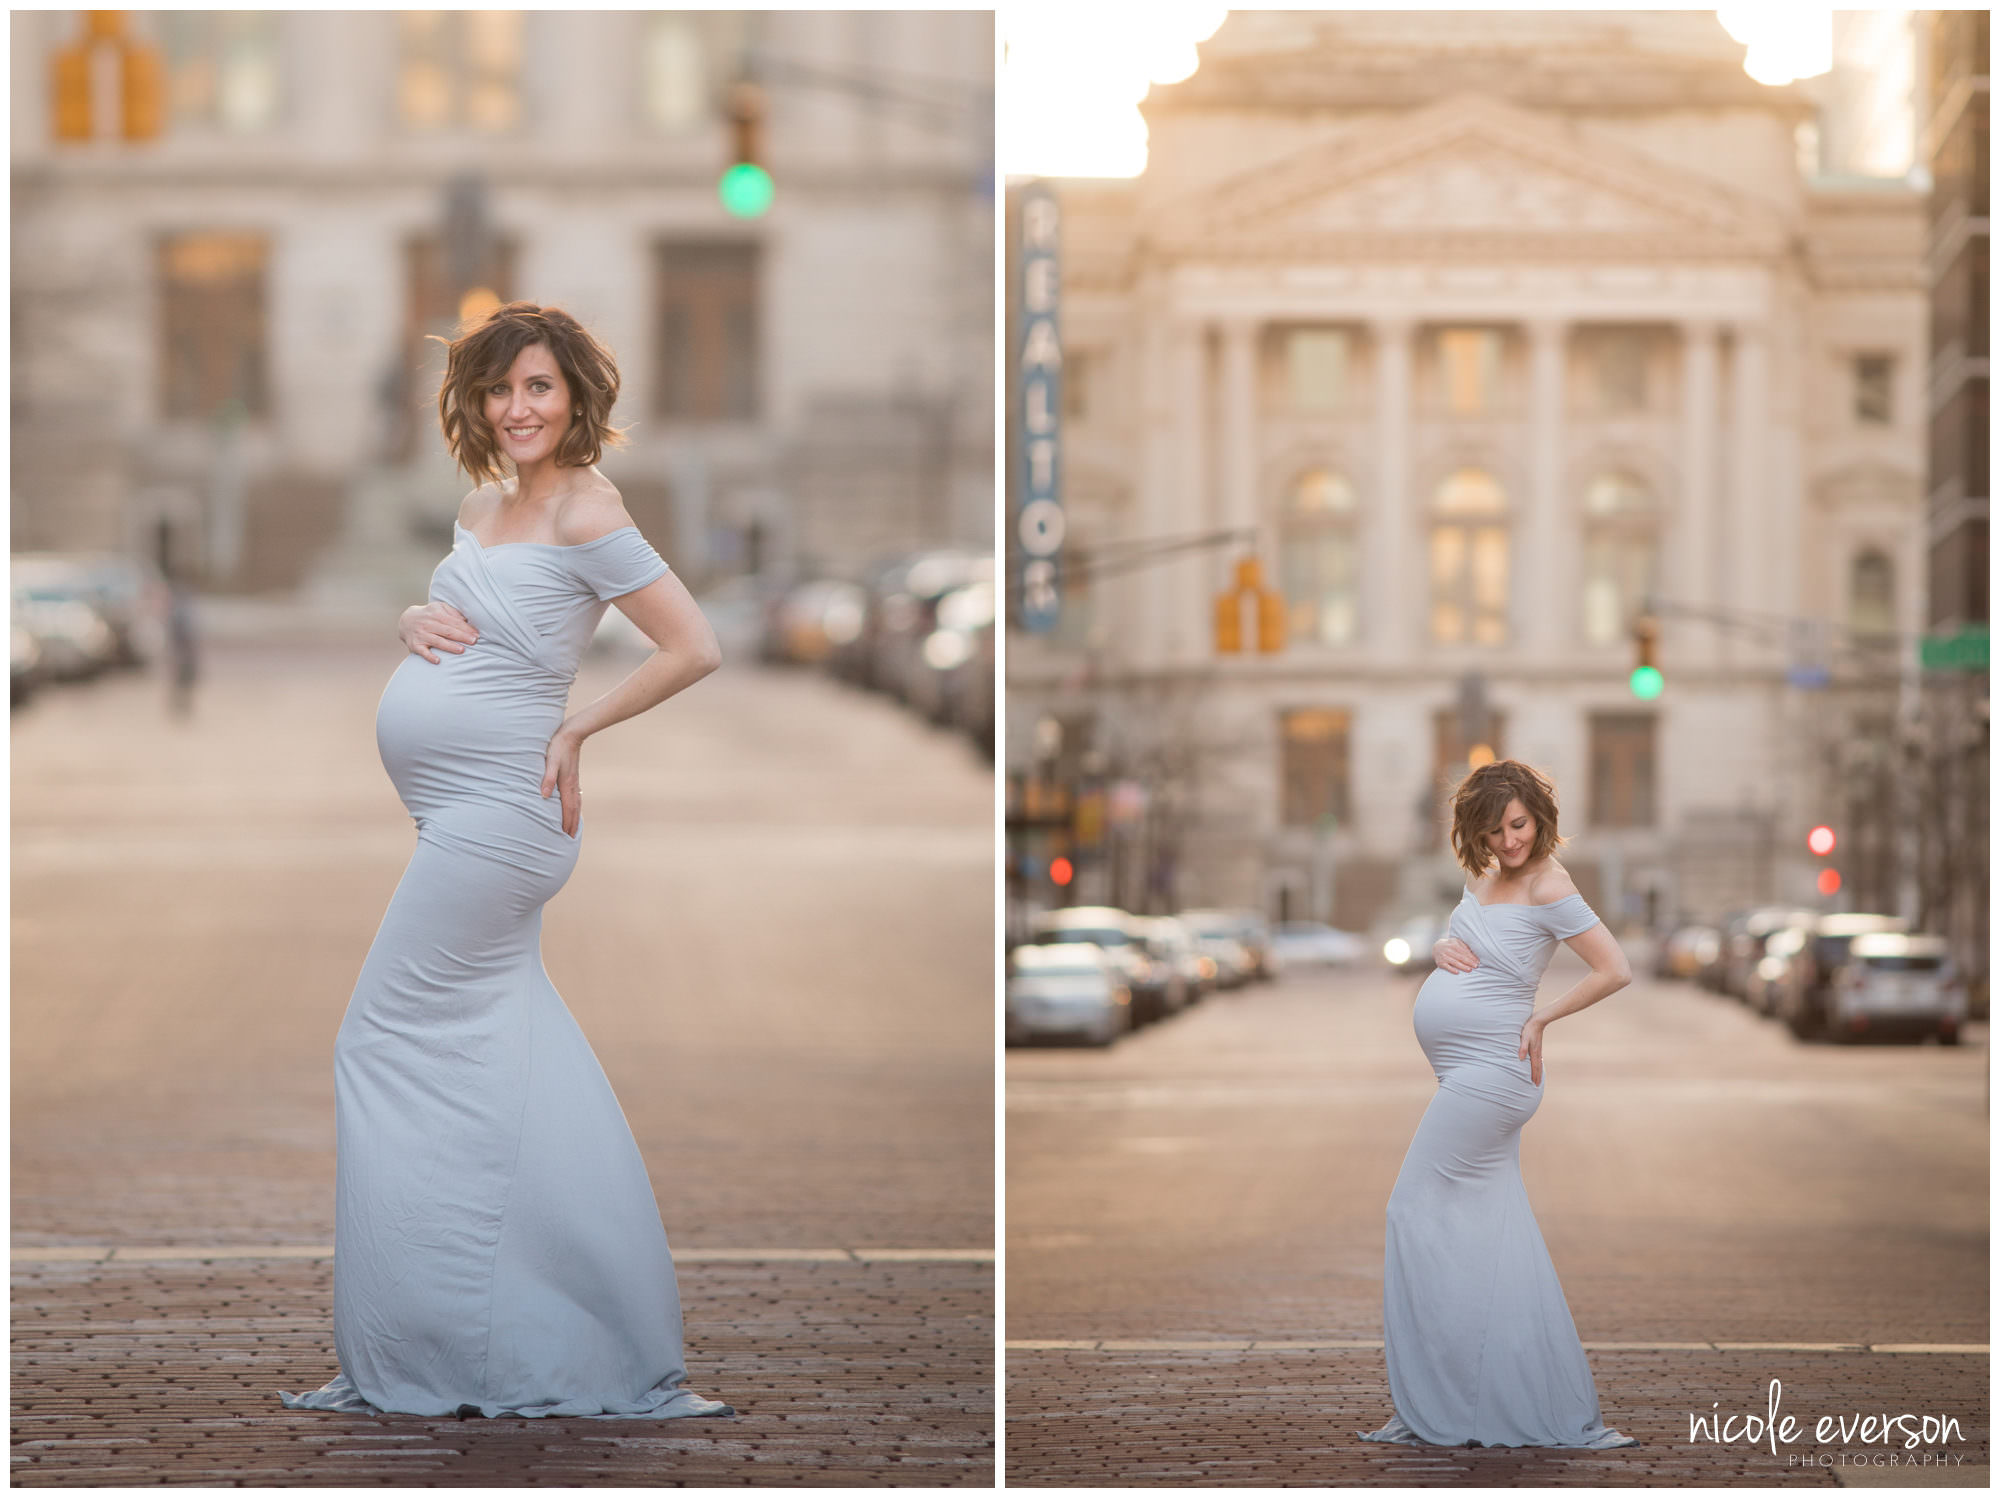 Tallahassee city maternity photos